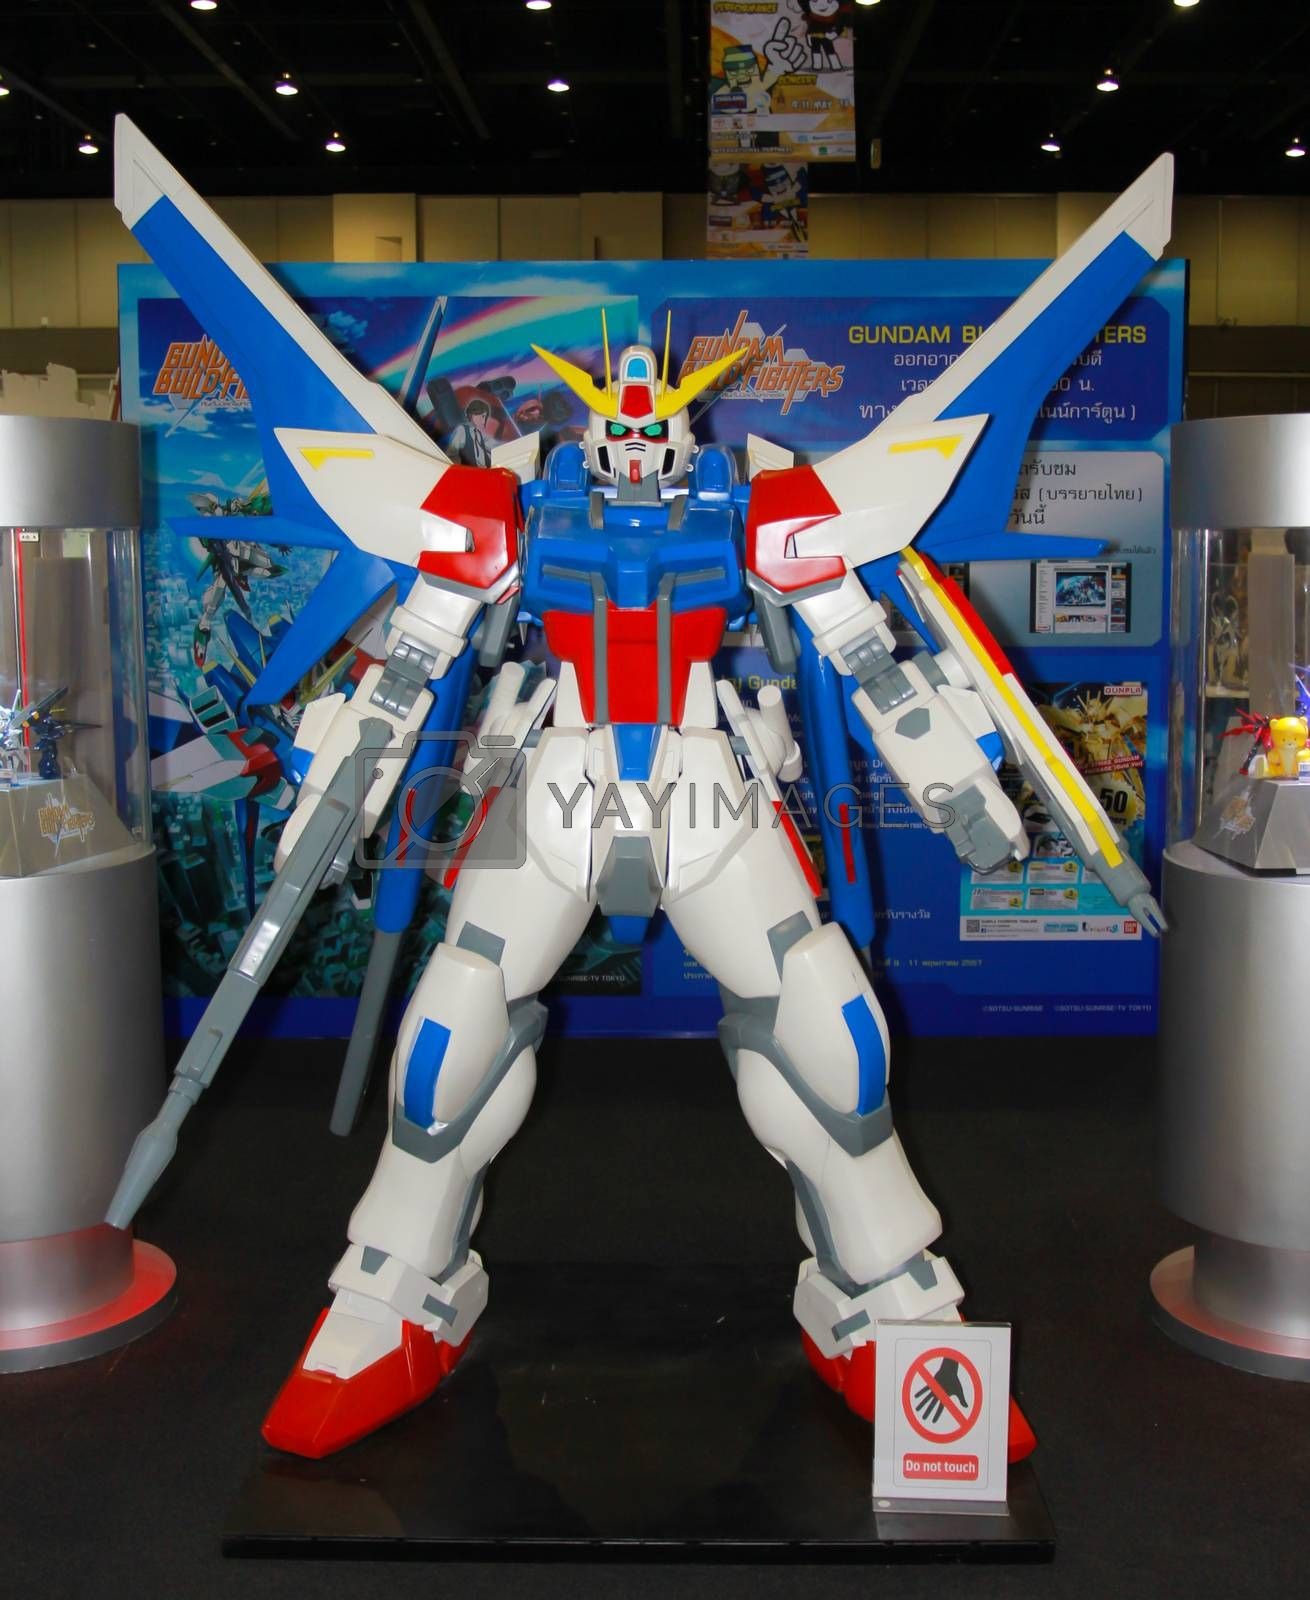 Royalty free image of A model of the character Gundam from the movies and comics 2 by redthirteen